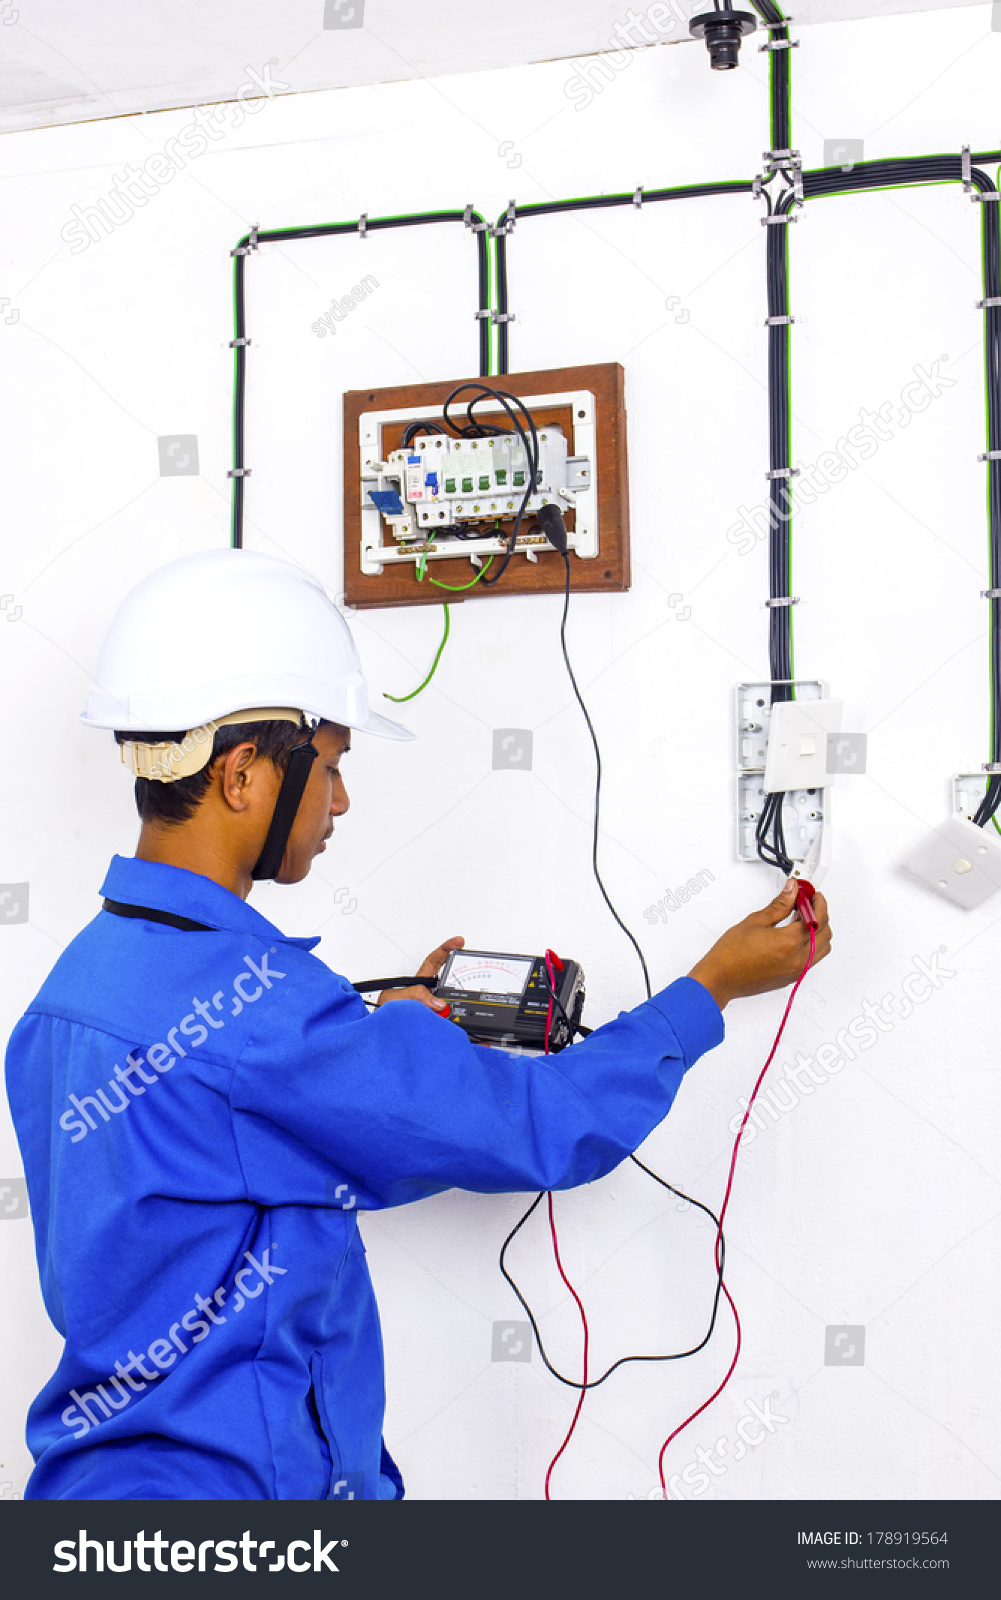 wire man during testing at surface wiring